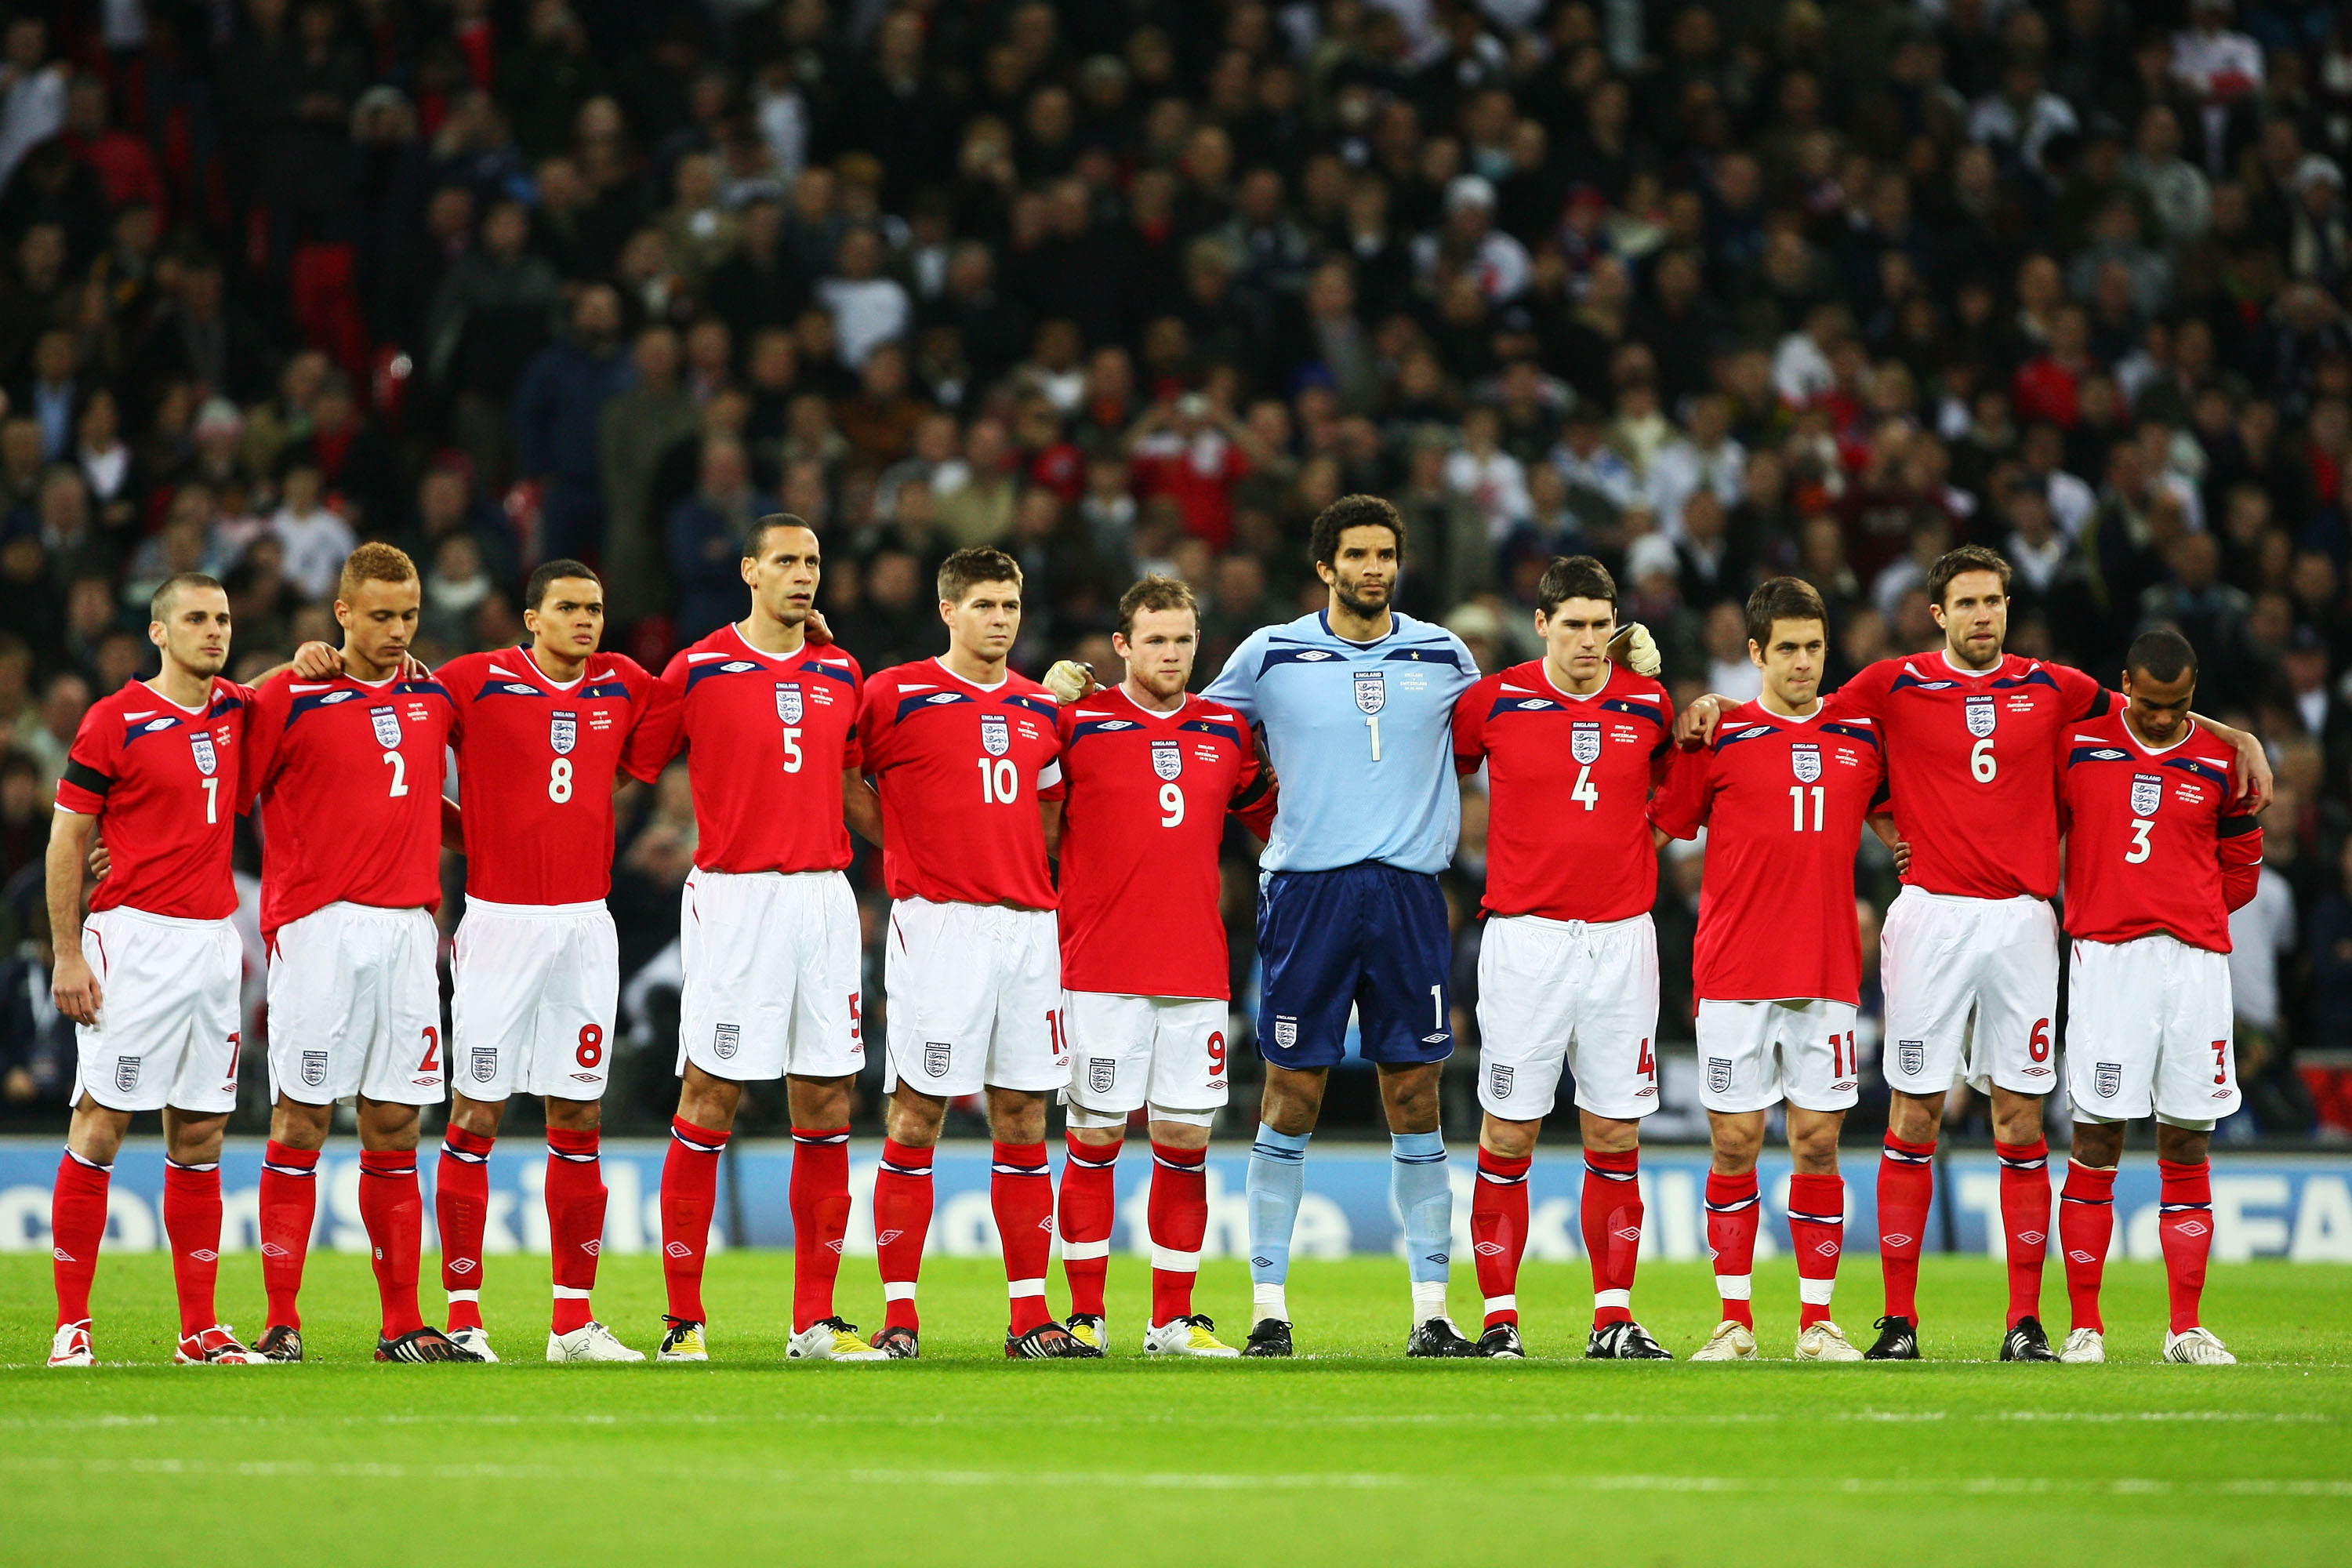 Cute Wallpapers For Boys And Girls England National Team Wallpapers